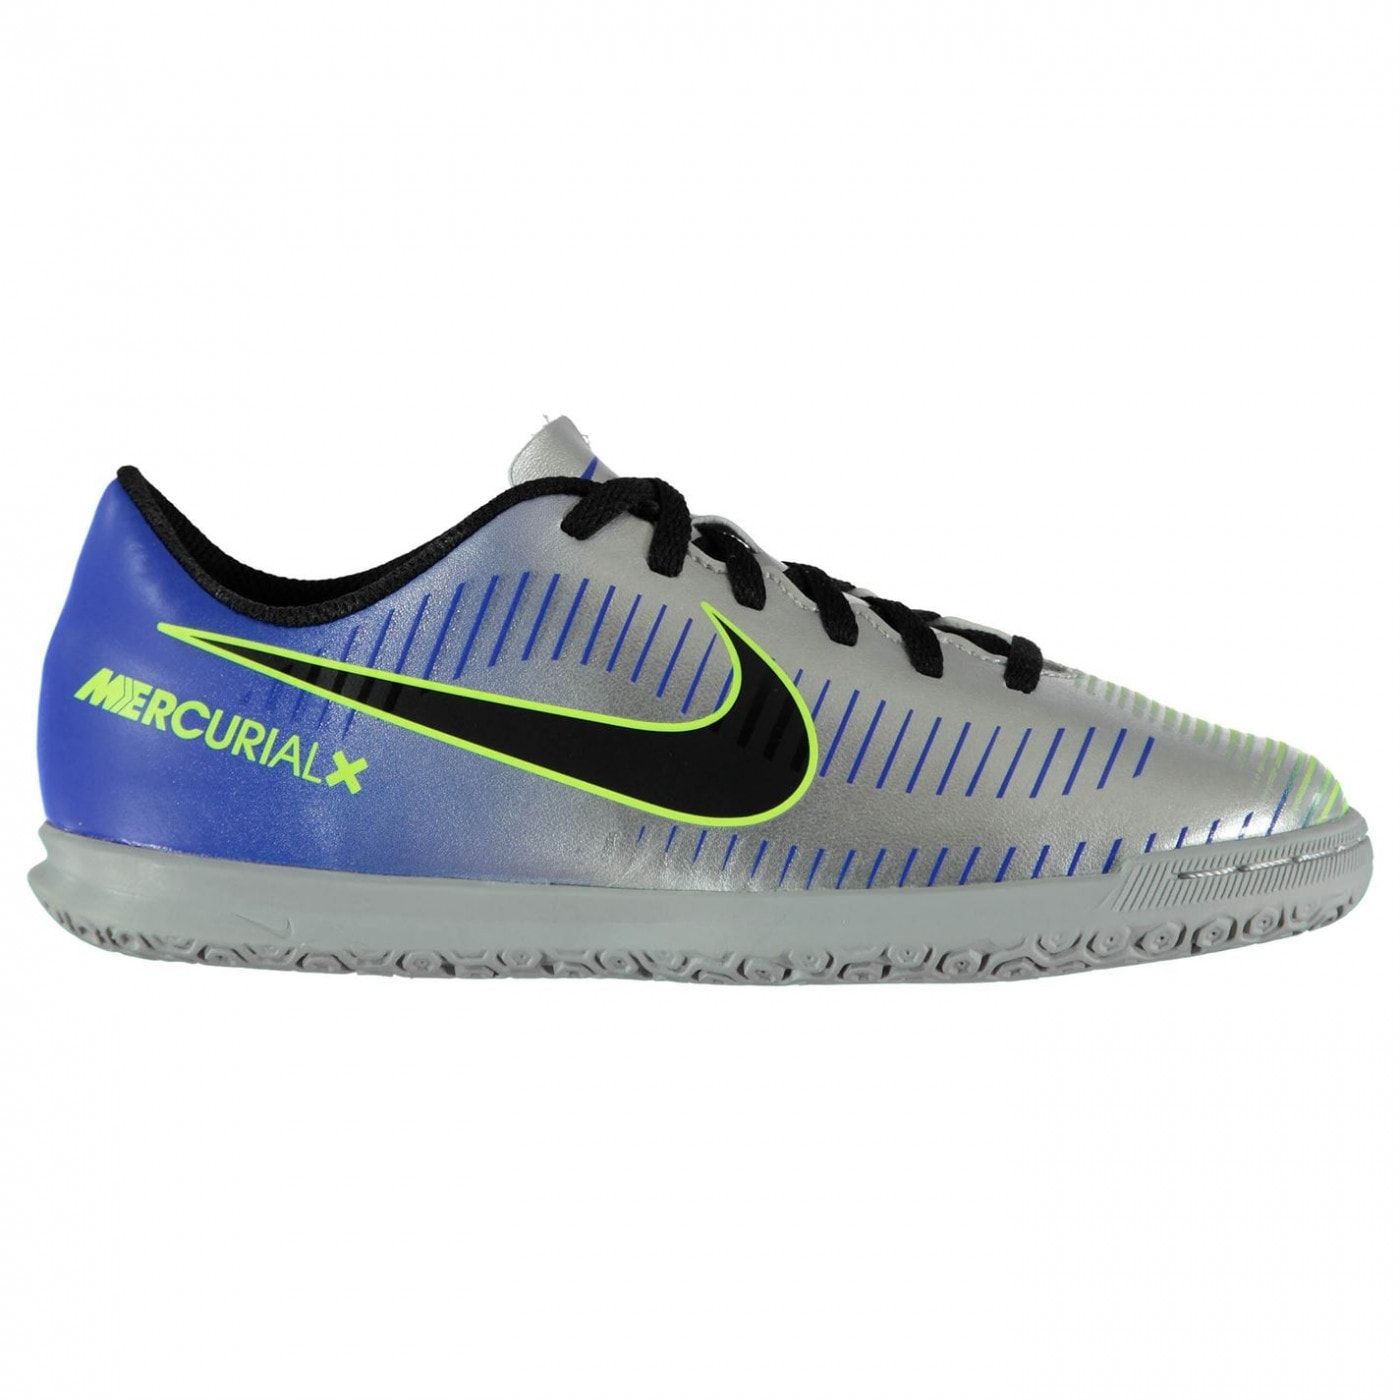 95acd7866 Išpardavimas baigėsi - Nike Mercurial Vapor Club Neymar Junior Indoor  Football Trainers